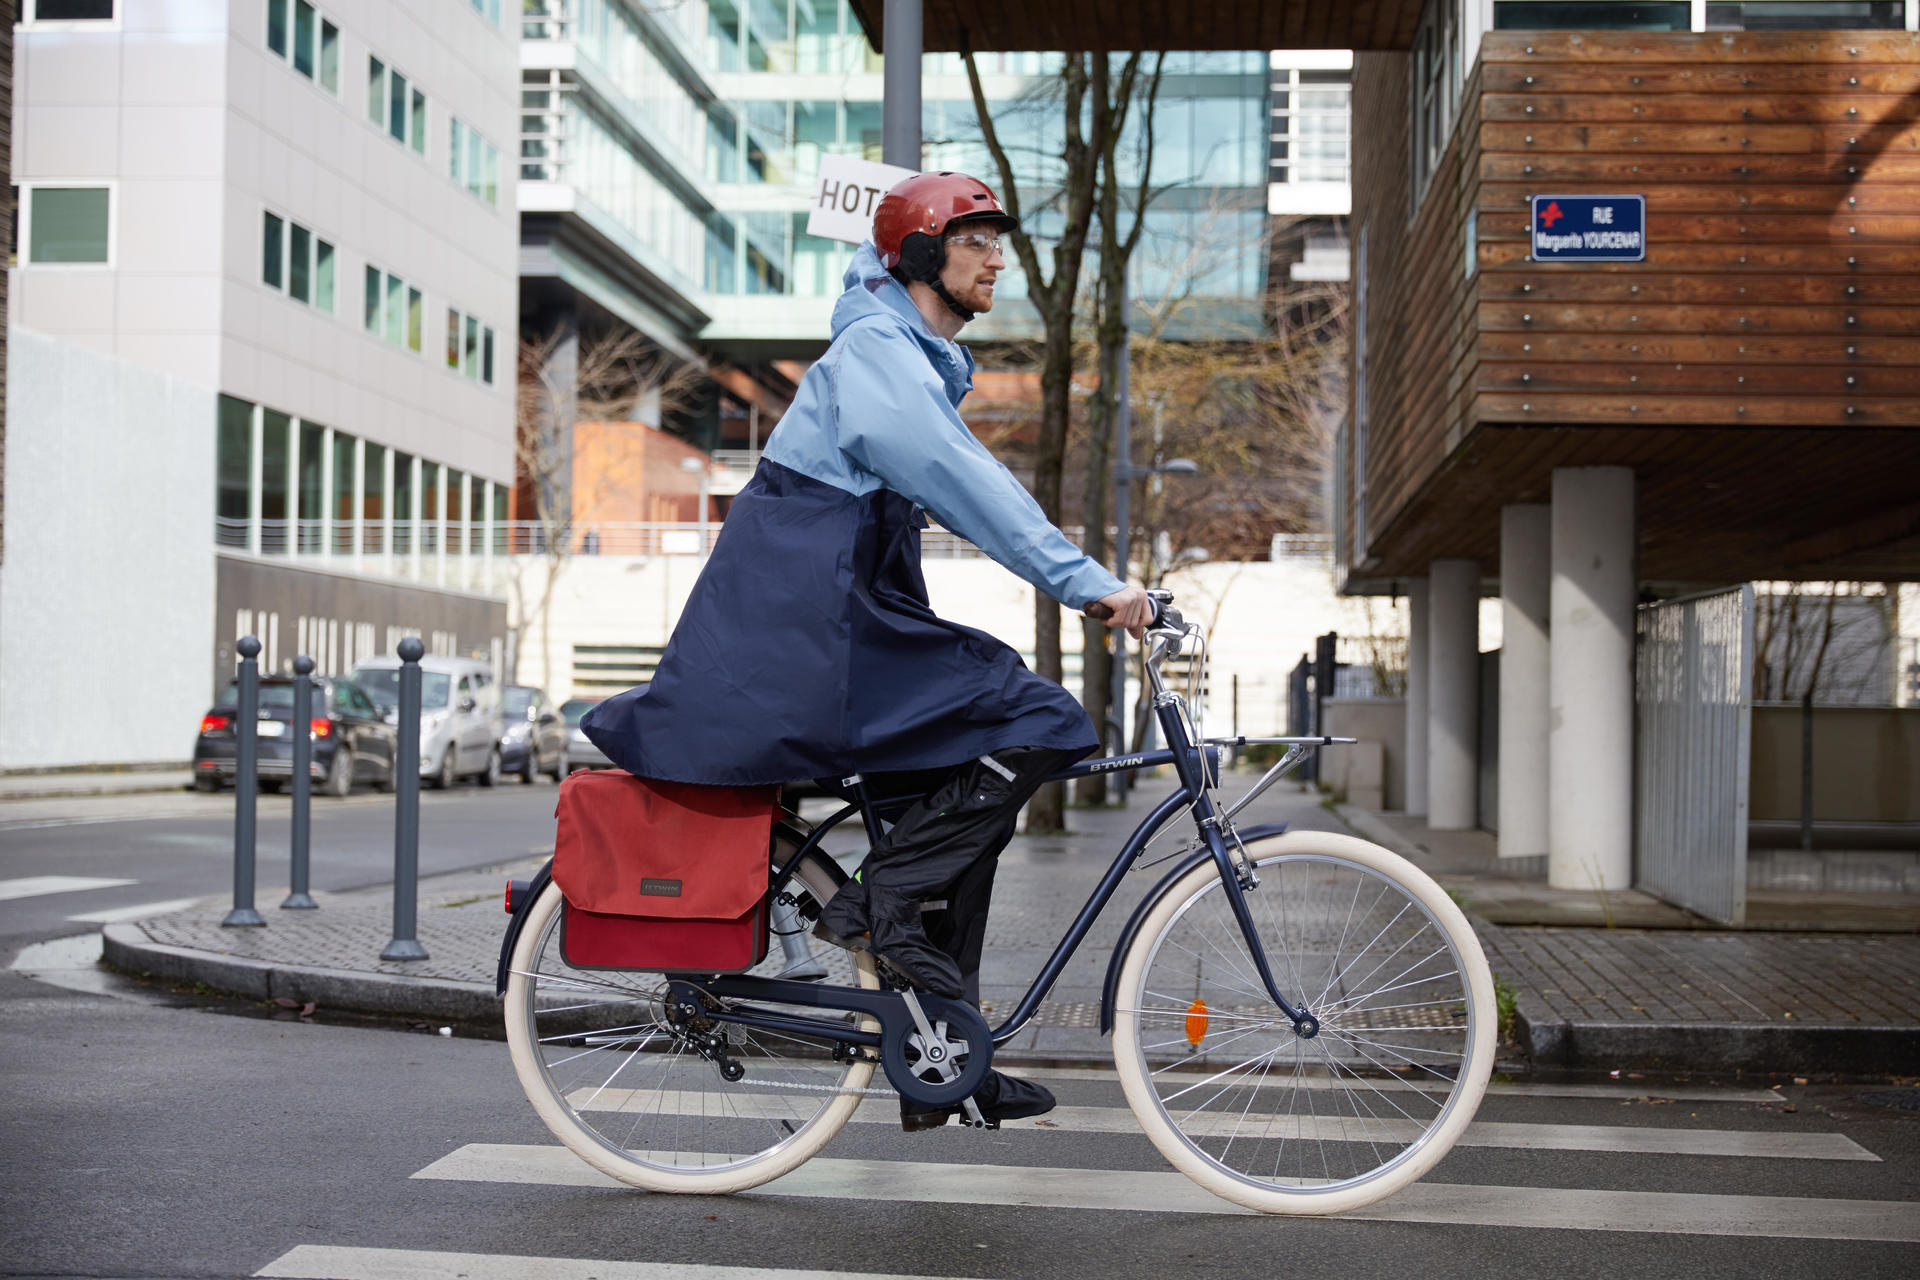 Five Things Every Bike Commuter Should Know